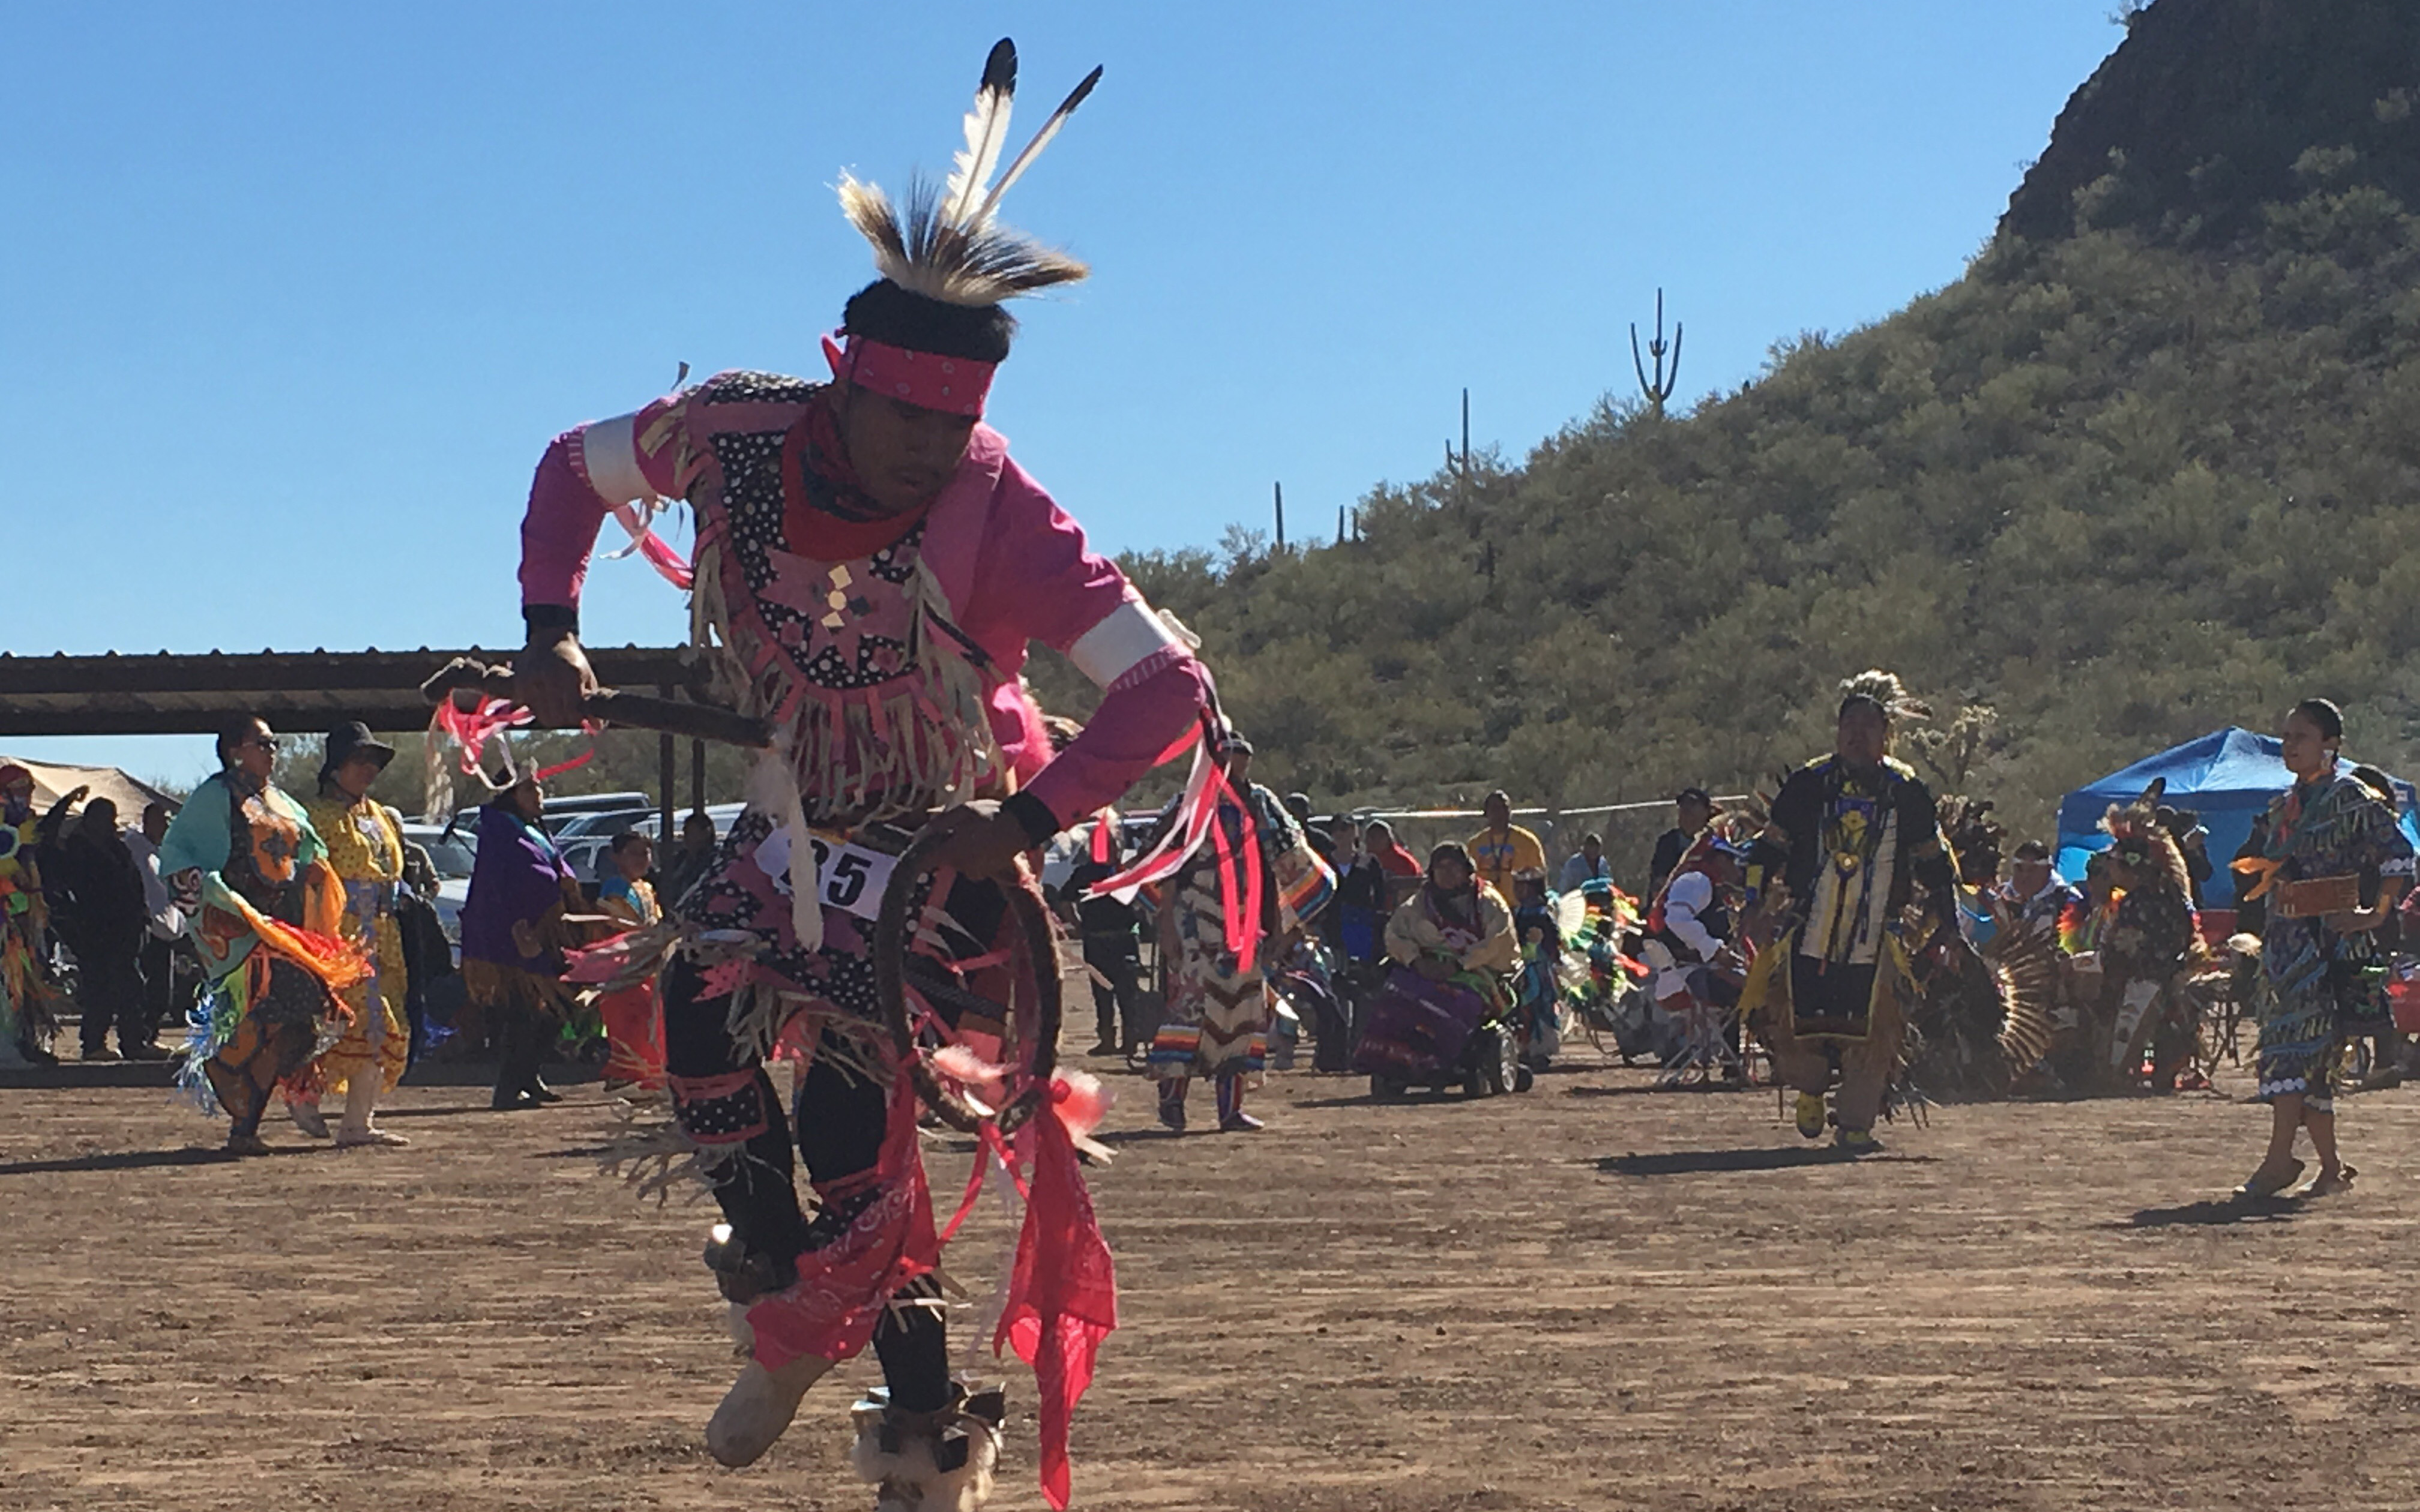 A dancer in the powwow contest at the annual Tohono O'odham Nation Rodeo & Fair, the largest event for the Tohono O'oham Nation. (Photo by Sarah Jarvis/Cronkite News)